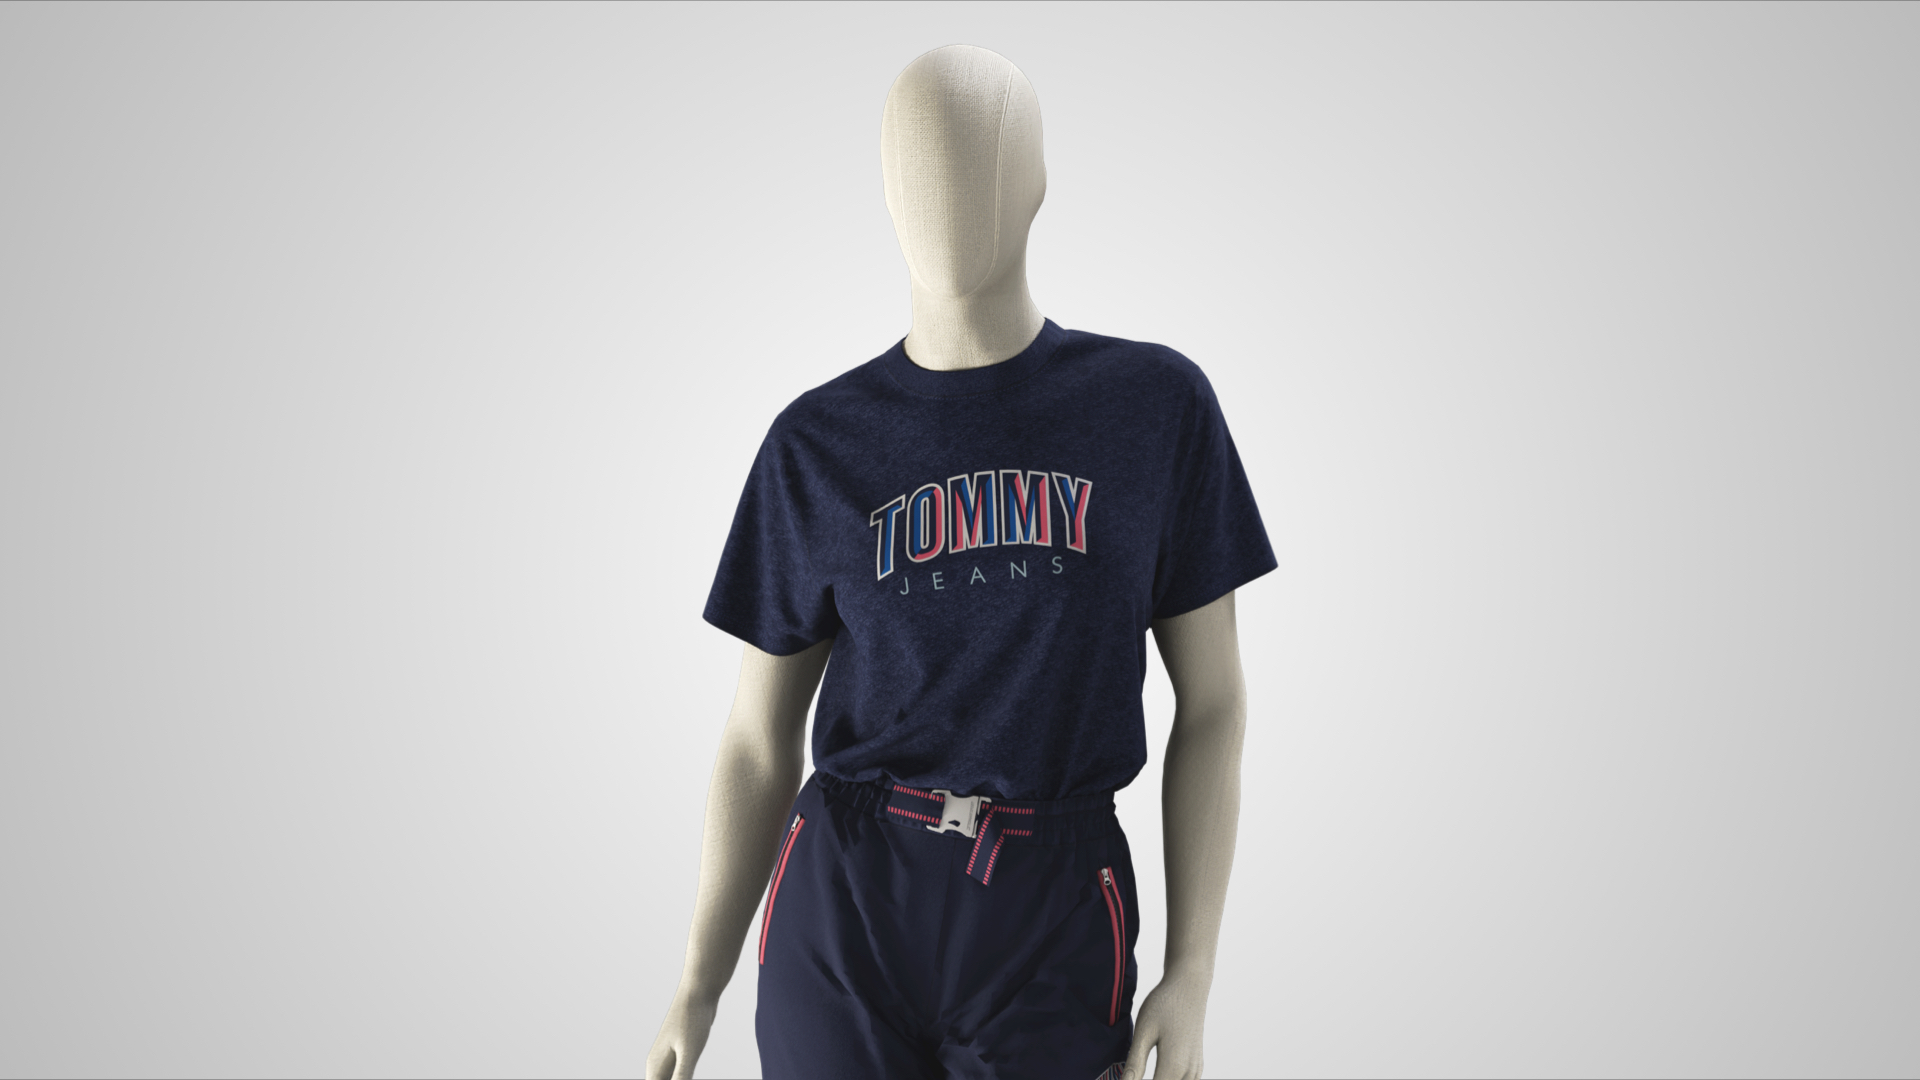 Tommy Jeans Girls key look designed and developed on an Avatar in 3D